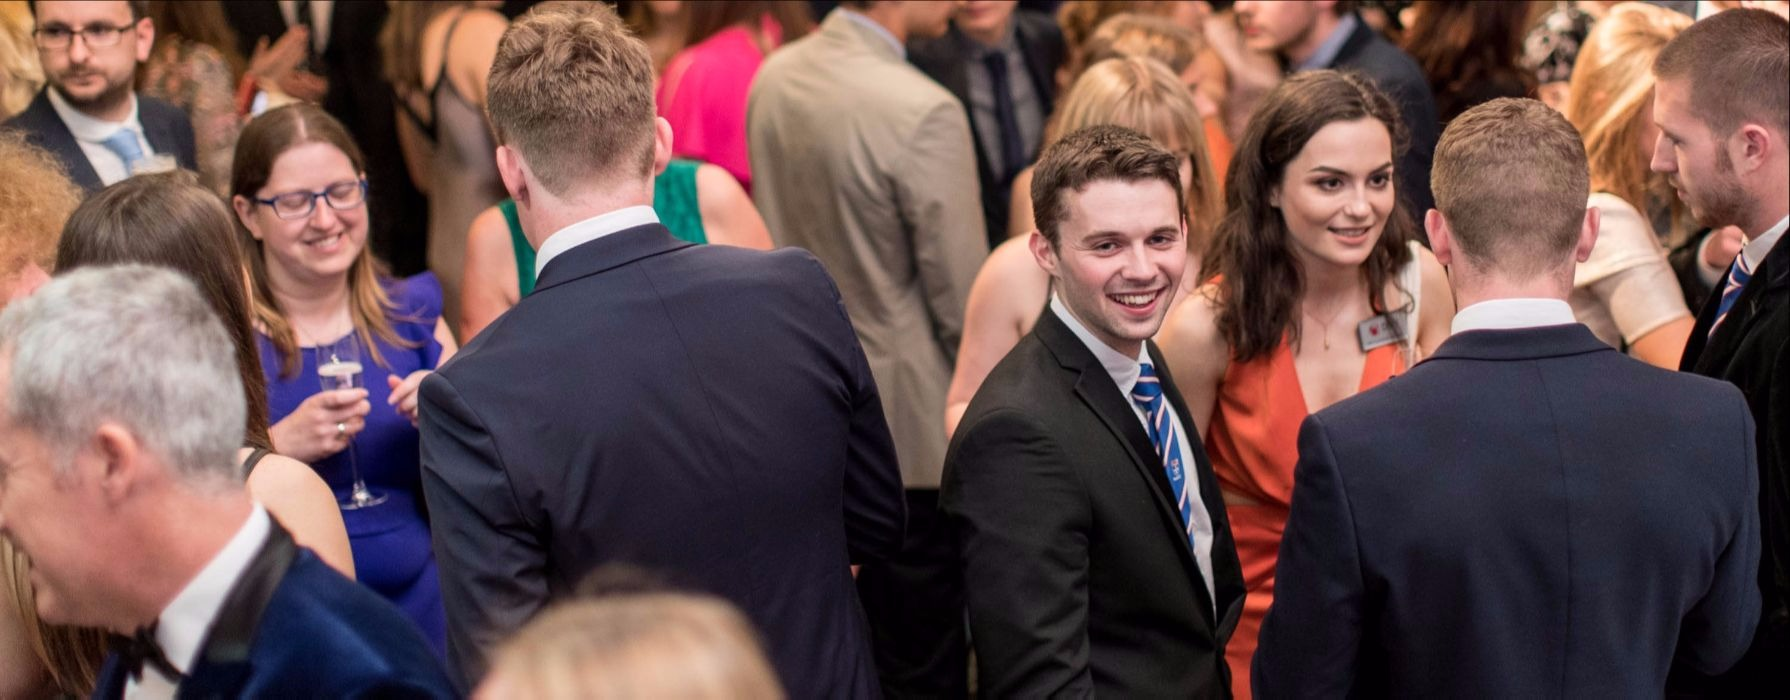 photo taken at Pride of Newcastle University awards showing students celebrating